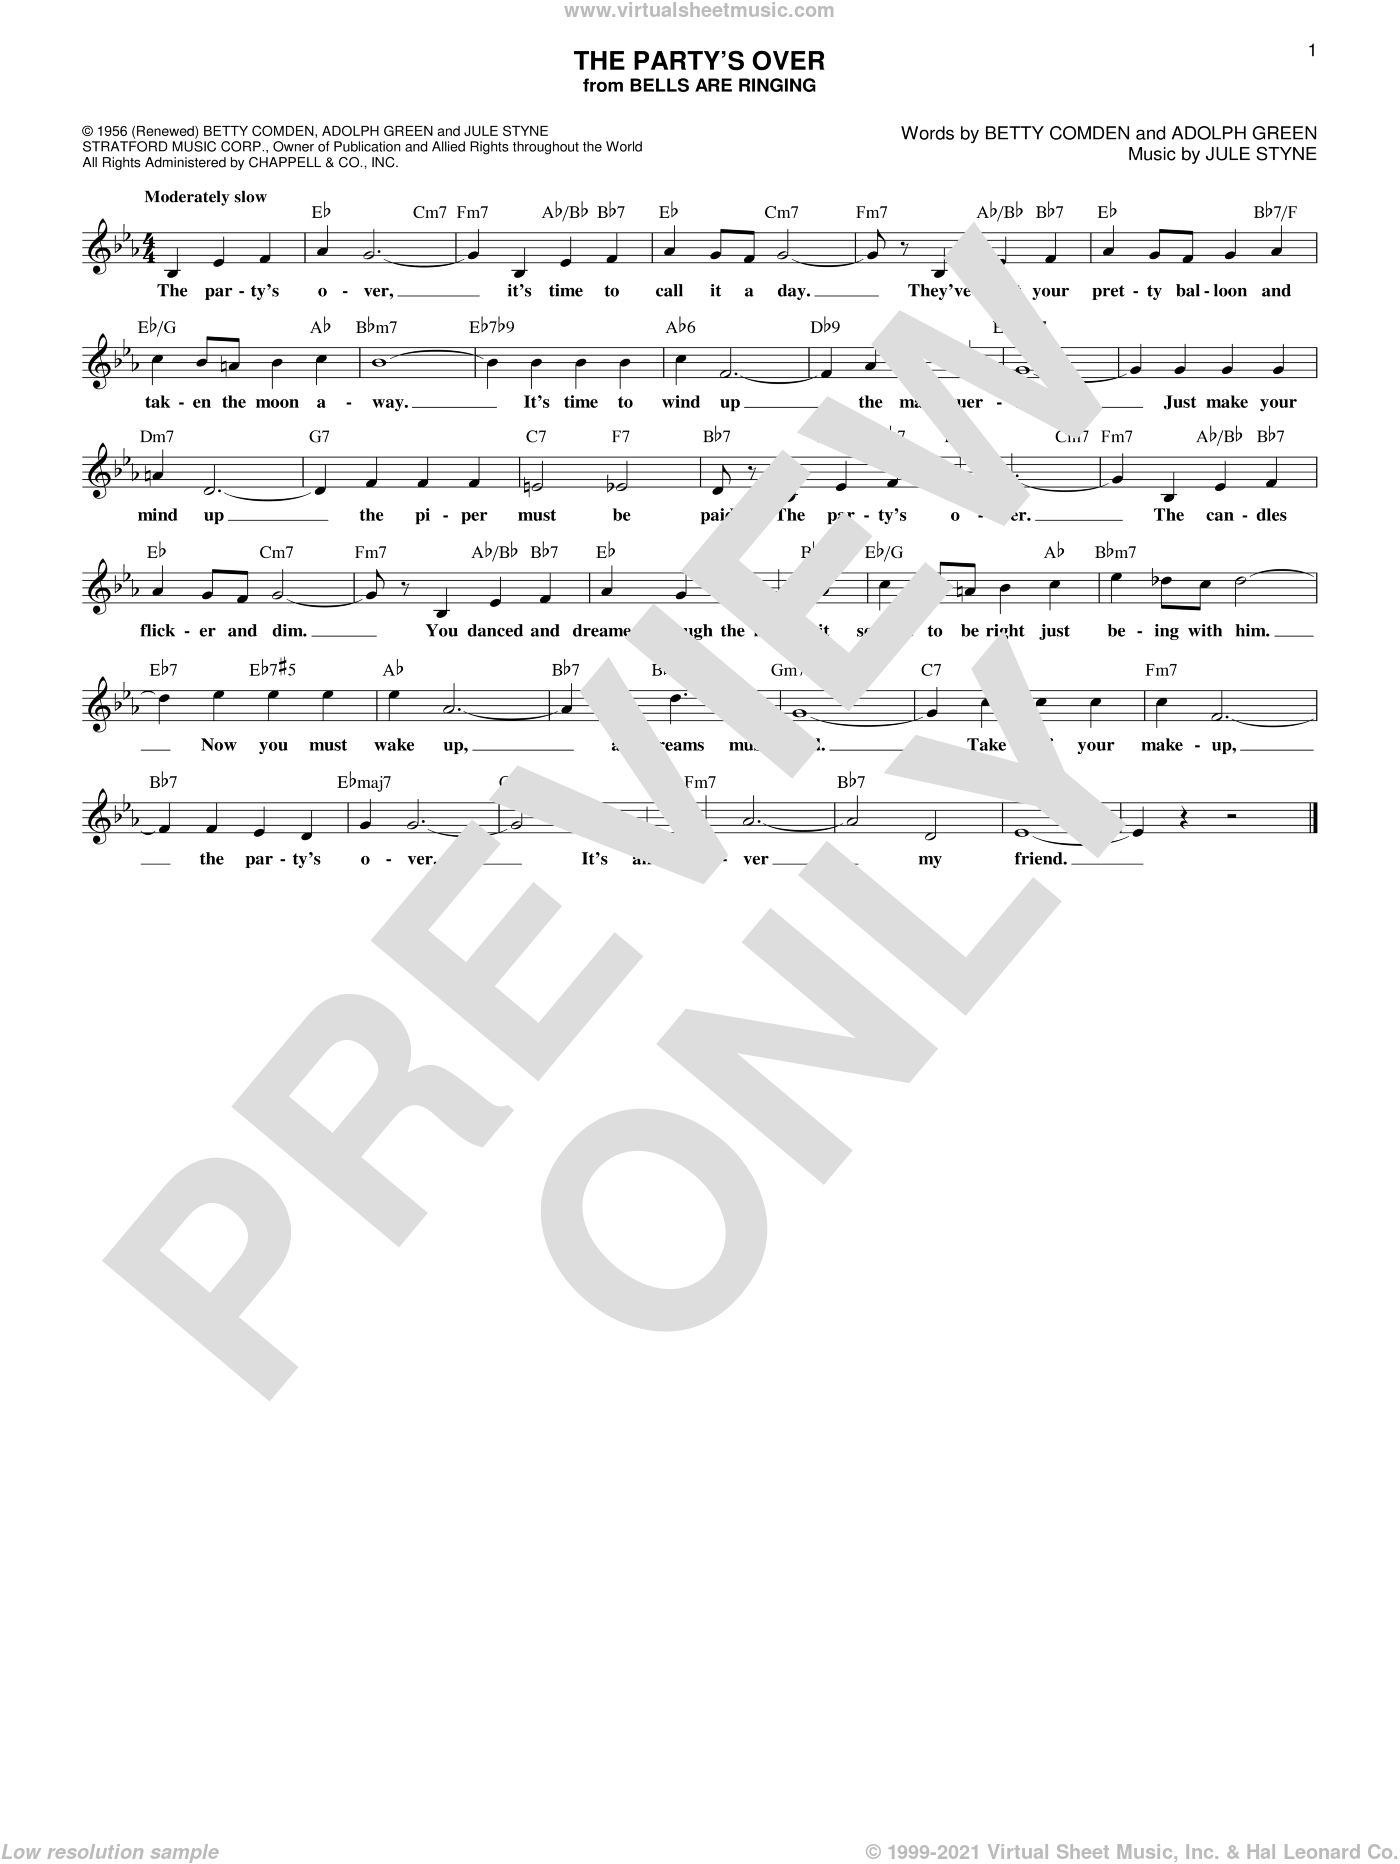 The Party's Over sheet music for voice and other instruments (fake book) by Jule Styne, Adolph Green and Betty Comden, intermediate skill level